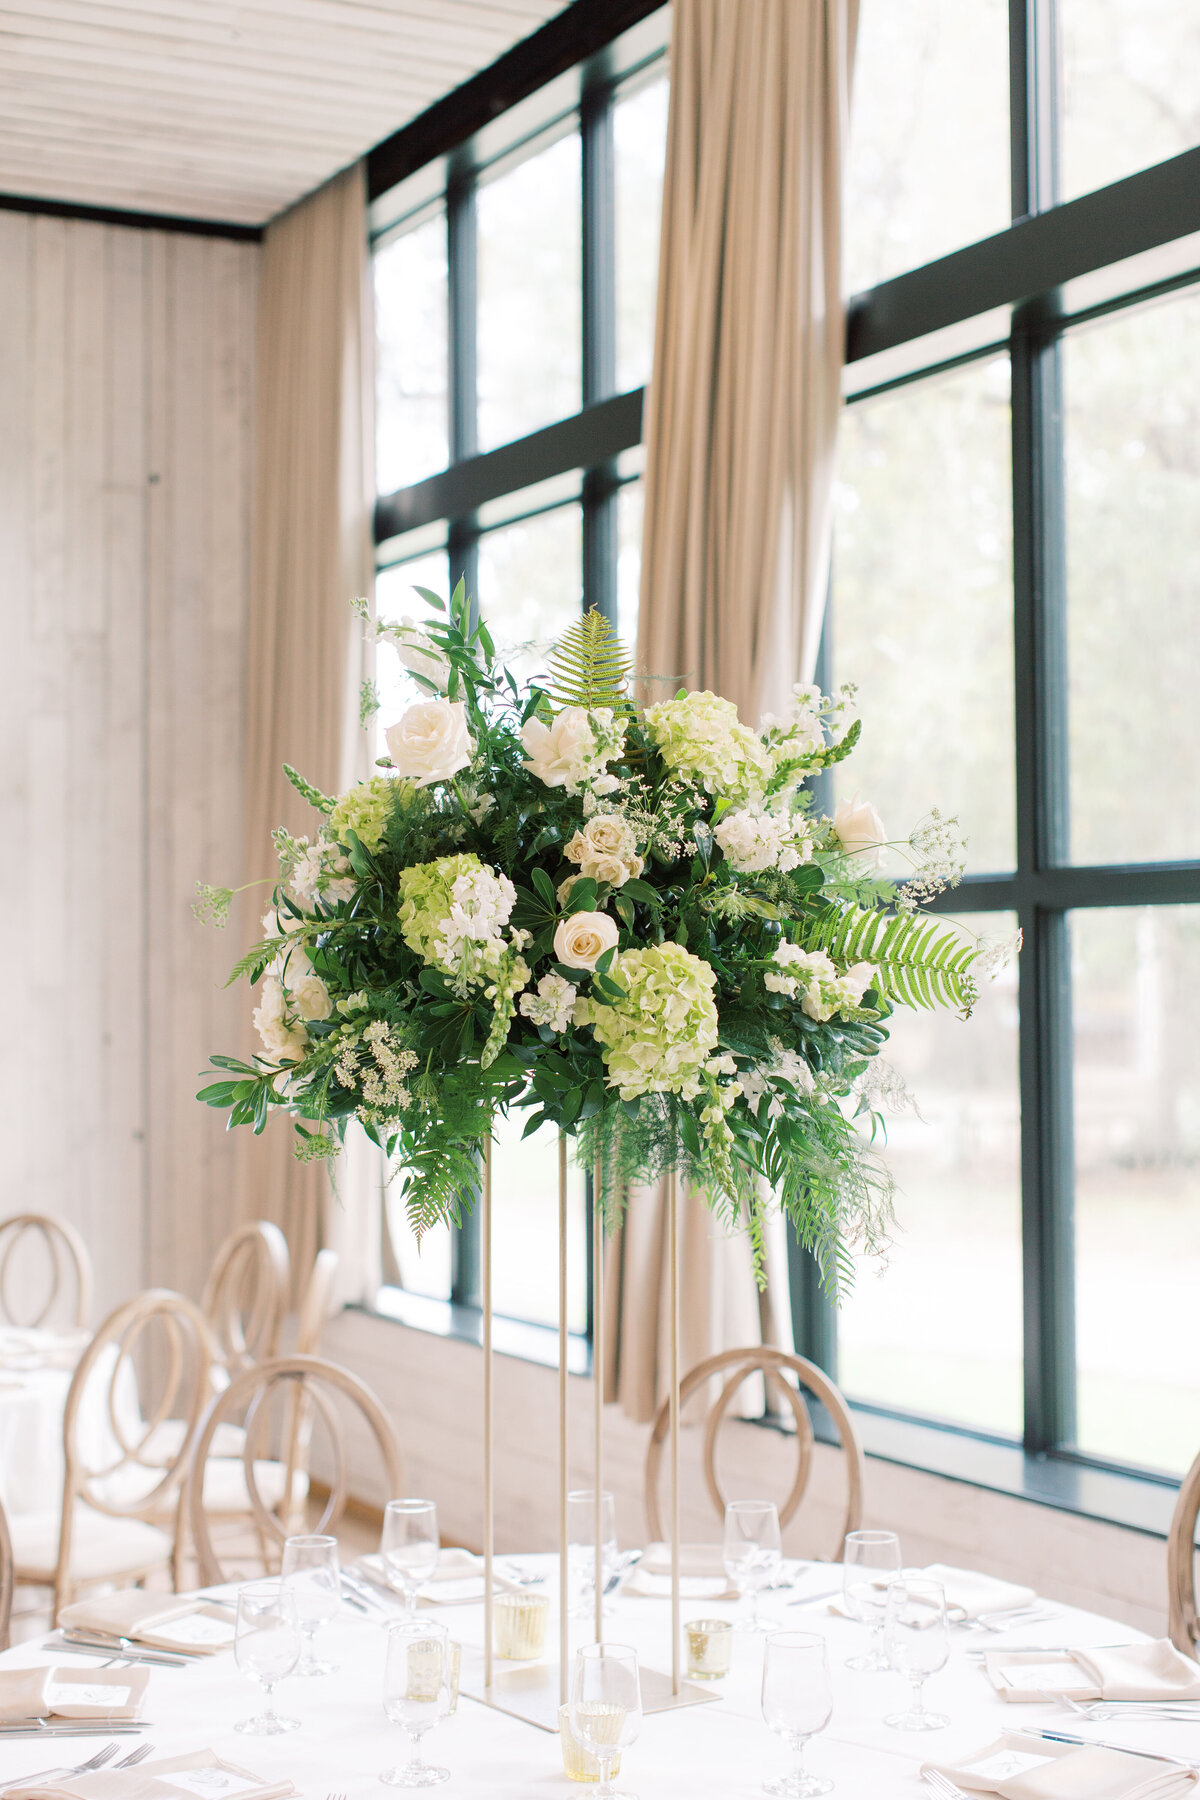 Melton_Wedding__Middleton_Place_Plantation_Charleston_South_Carolina_Jacksonville_Florida_Devon_Donnahoo_Photography__0440